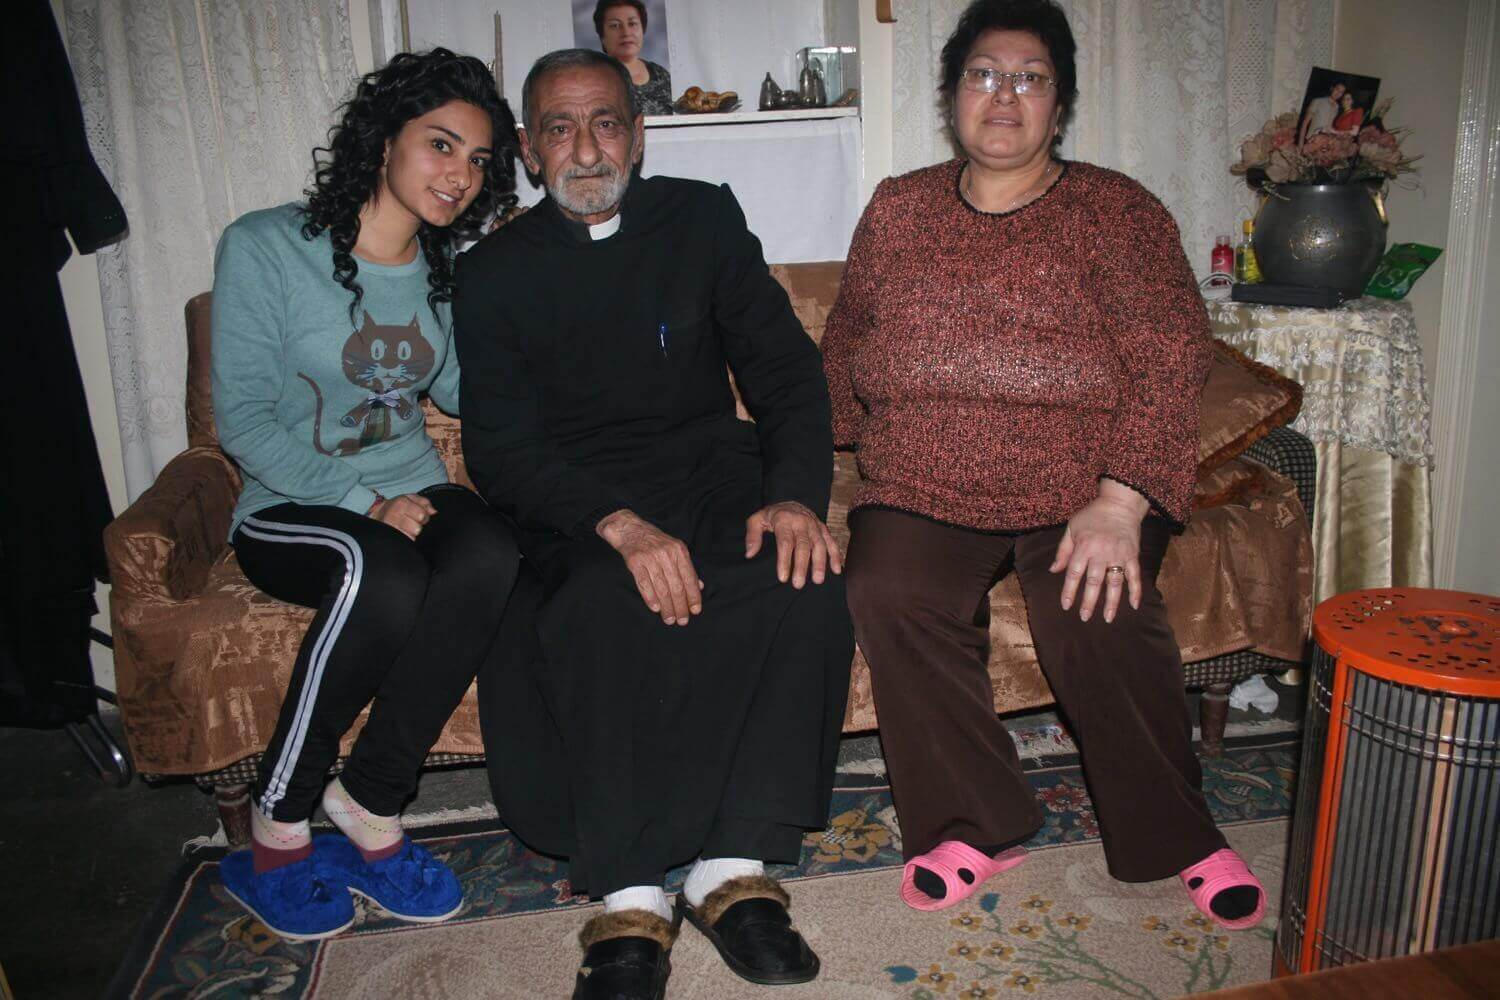 Priest Dajad Akobian with his wife and daughter Talar Dêrik, February 19, 2014